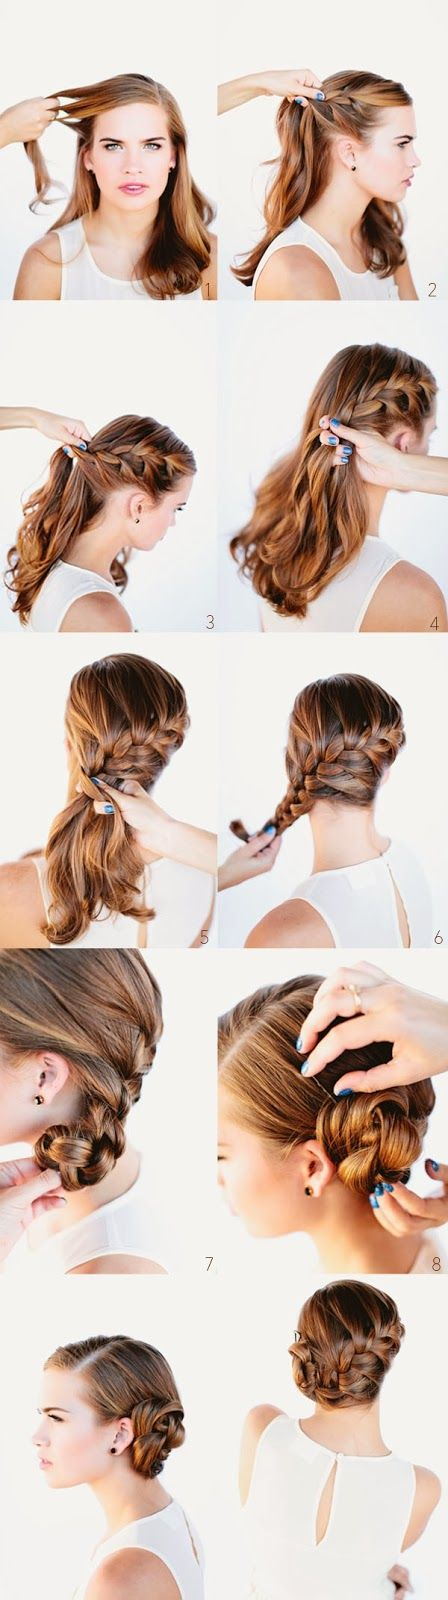 9 Types of Classy Braided Hairstyle Tutorials You Should Try